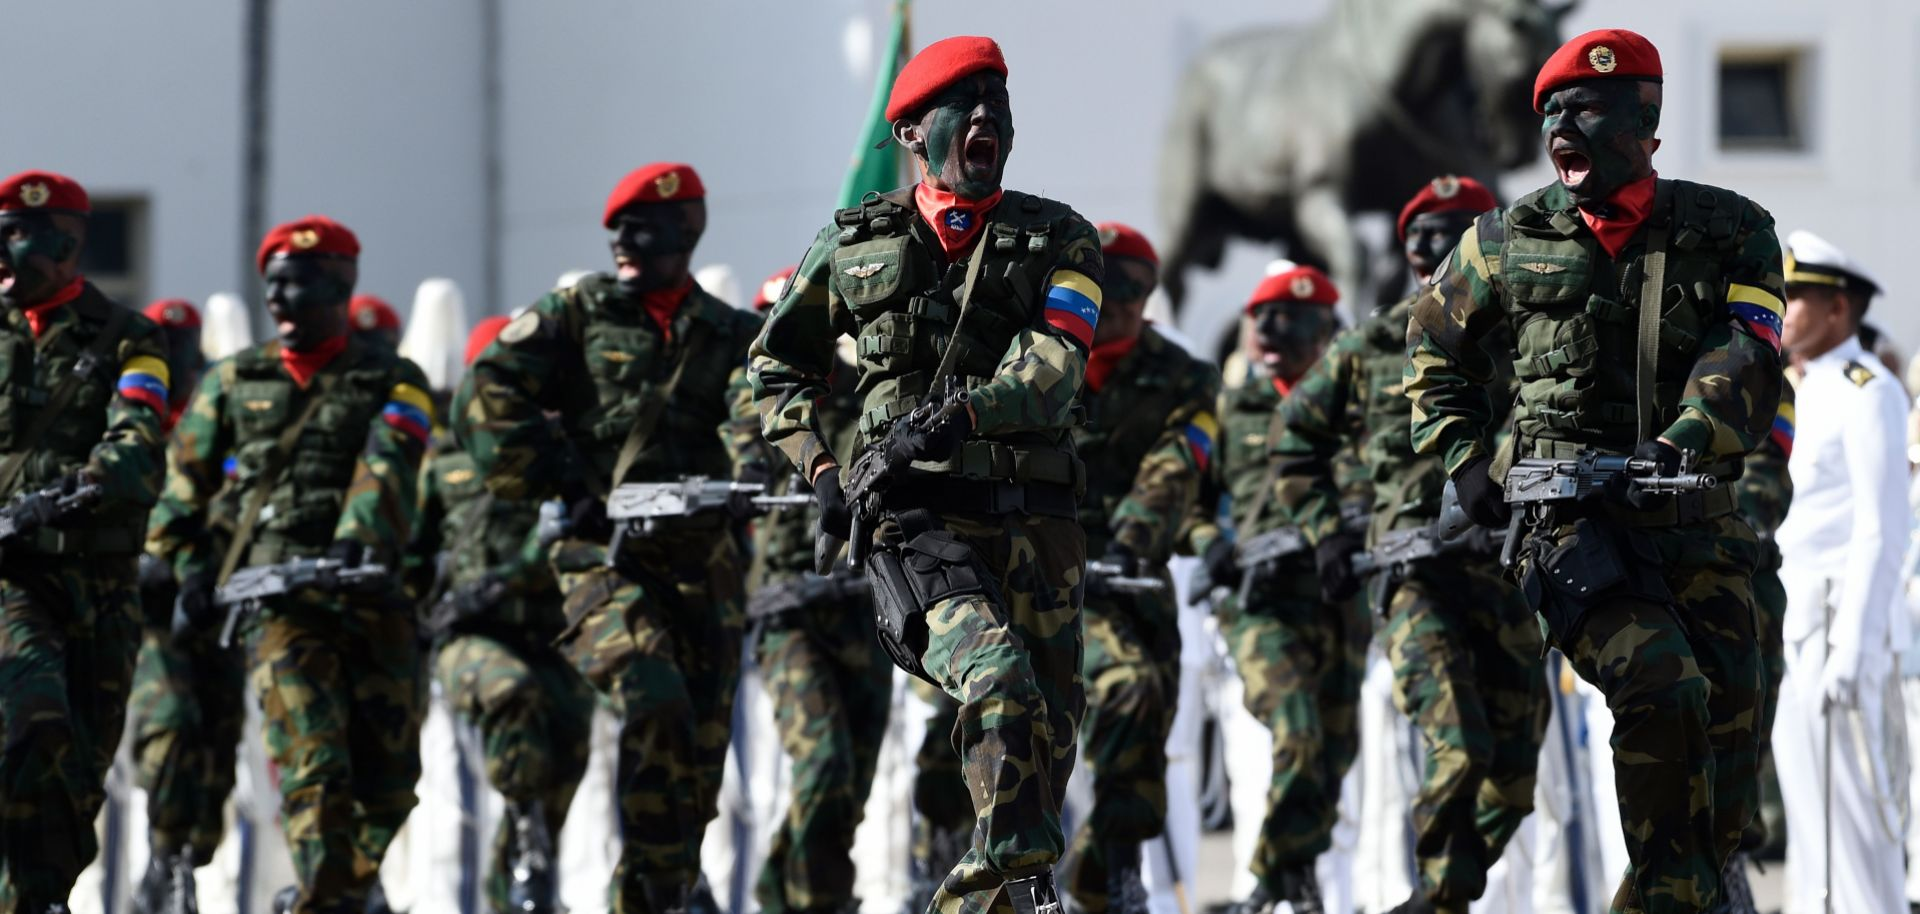 Military troops during a ceremony at the Fuerte Tiuna Military Complex in Caracas on Jan. 10.